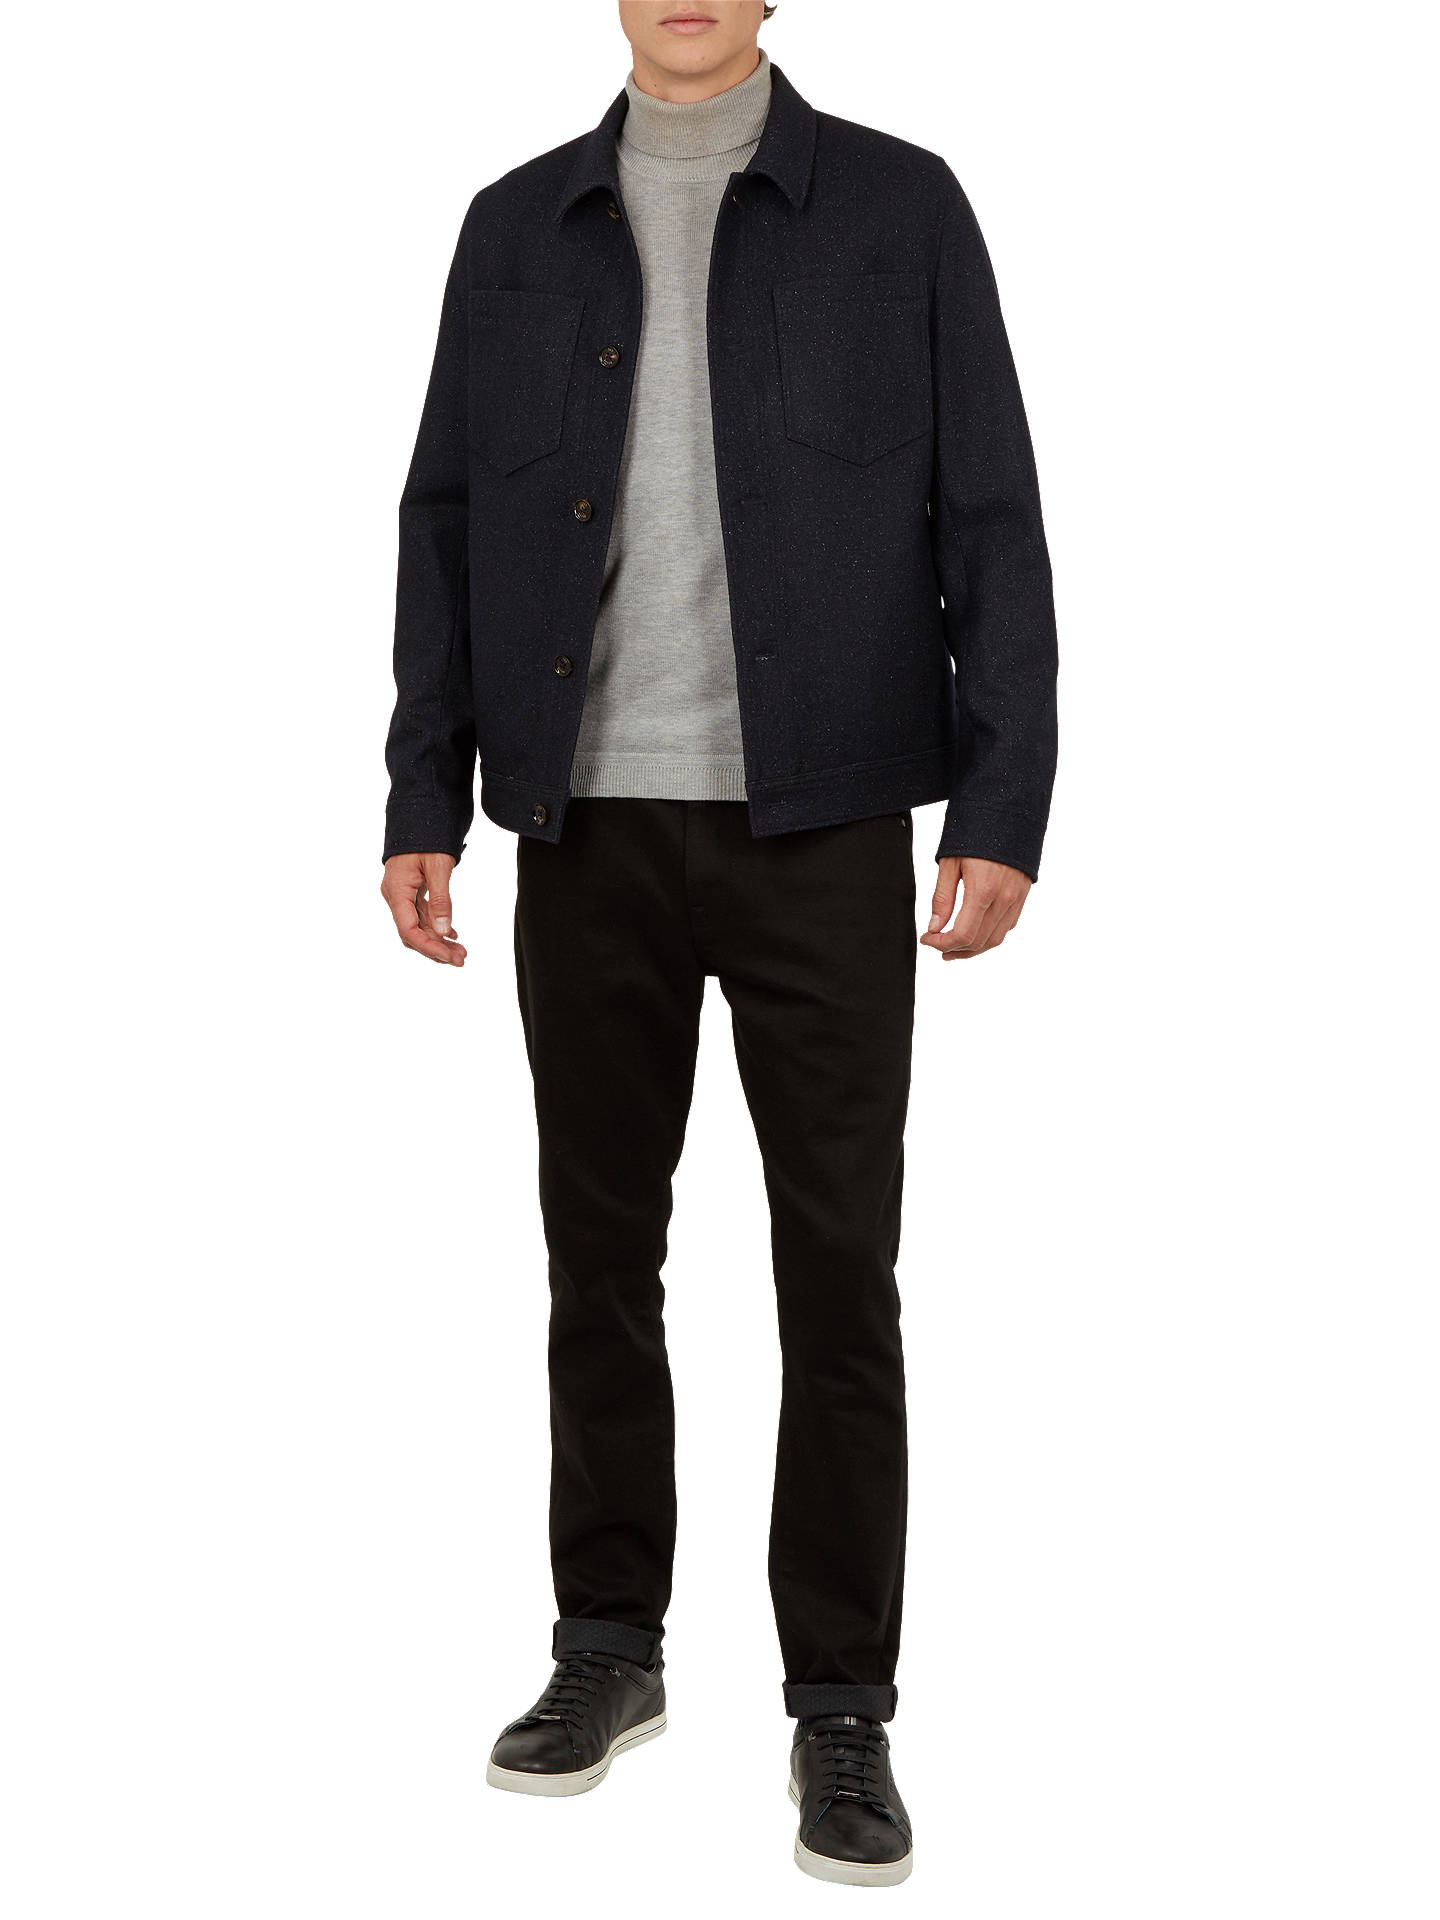 BuyTed Baker Rarebit Flecked Collar Jacket, Navy, 5 Online at johnlewis.com